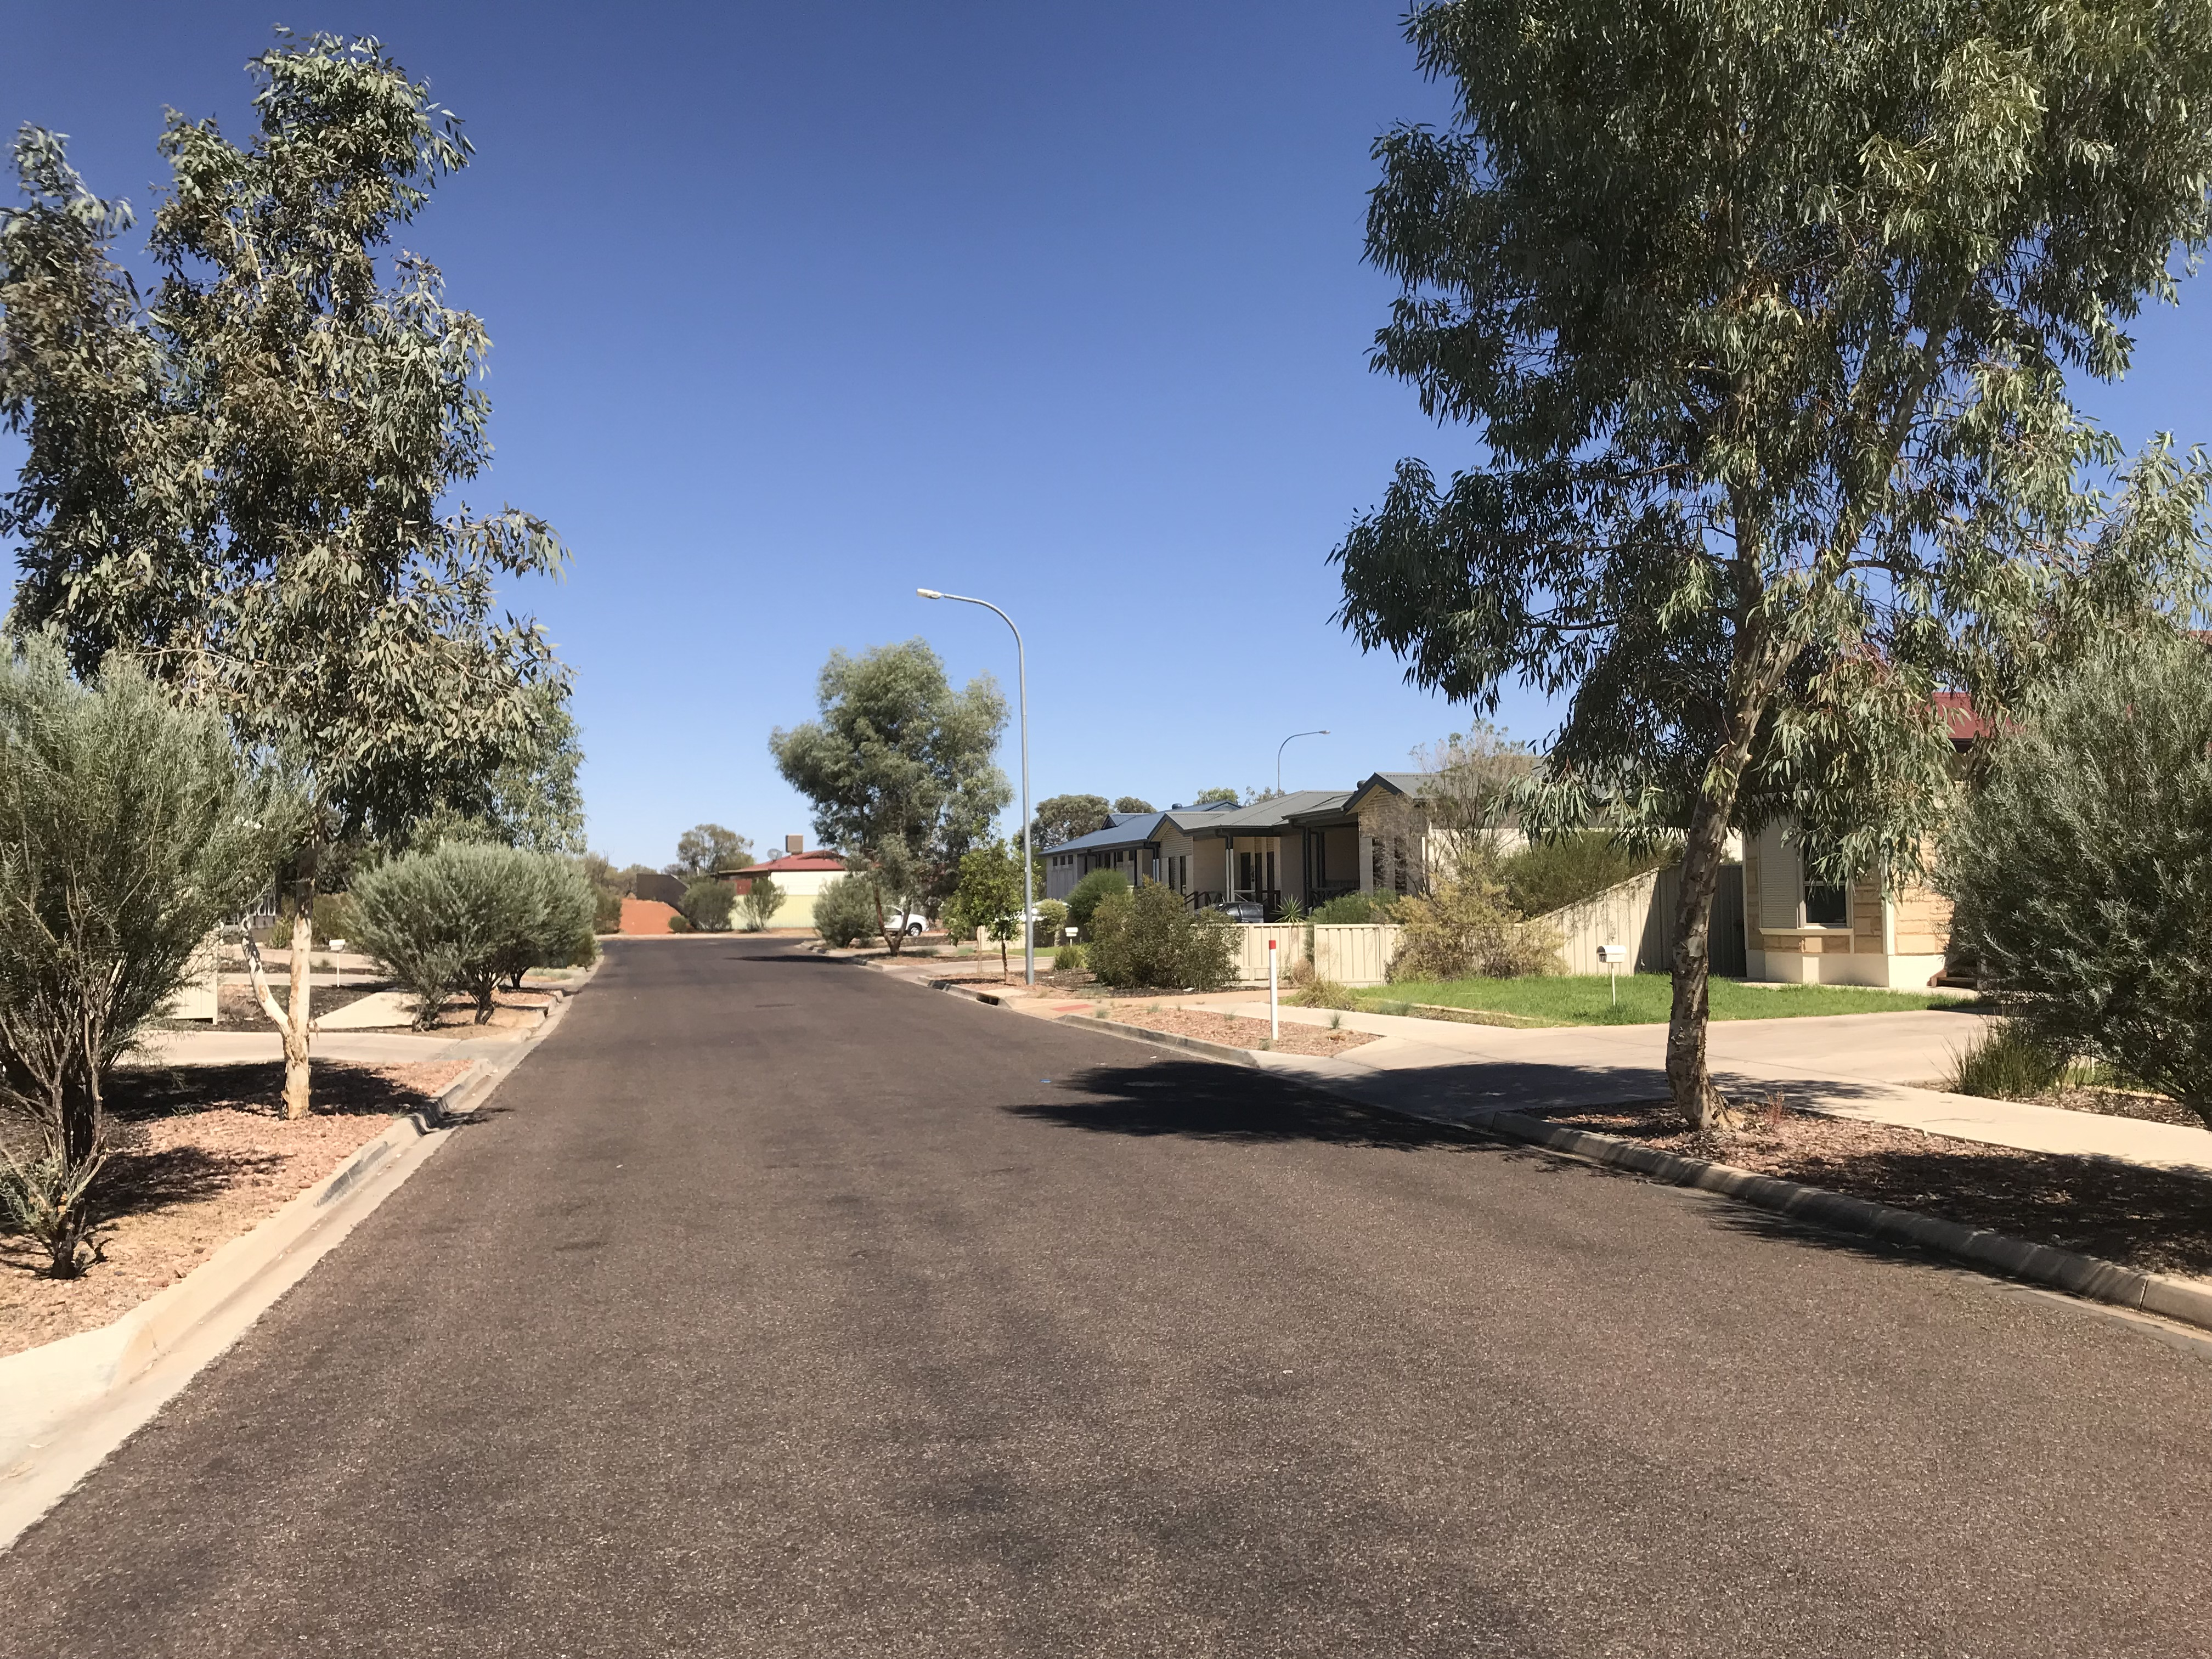 Street with houses